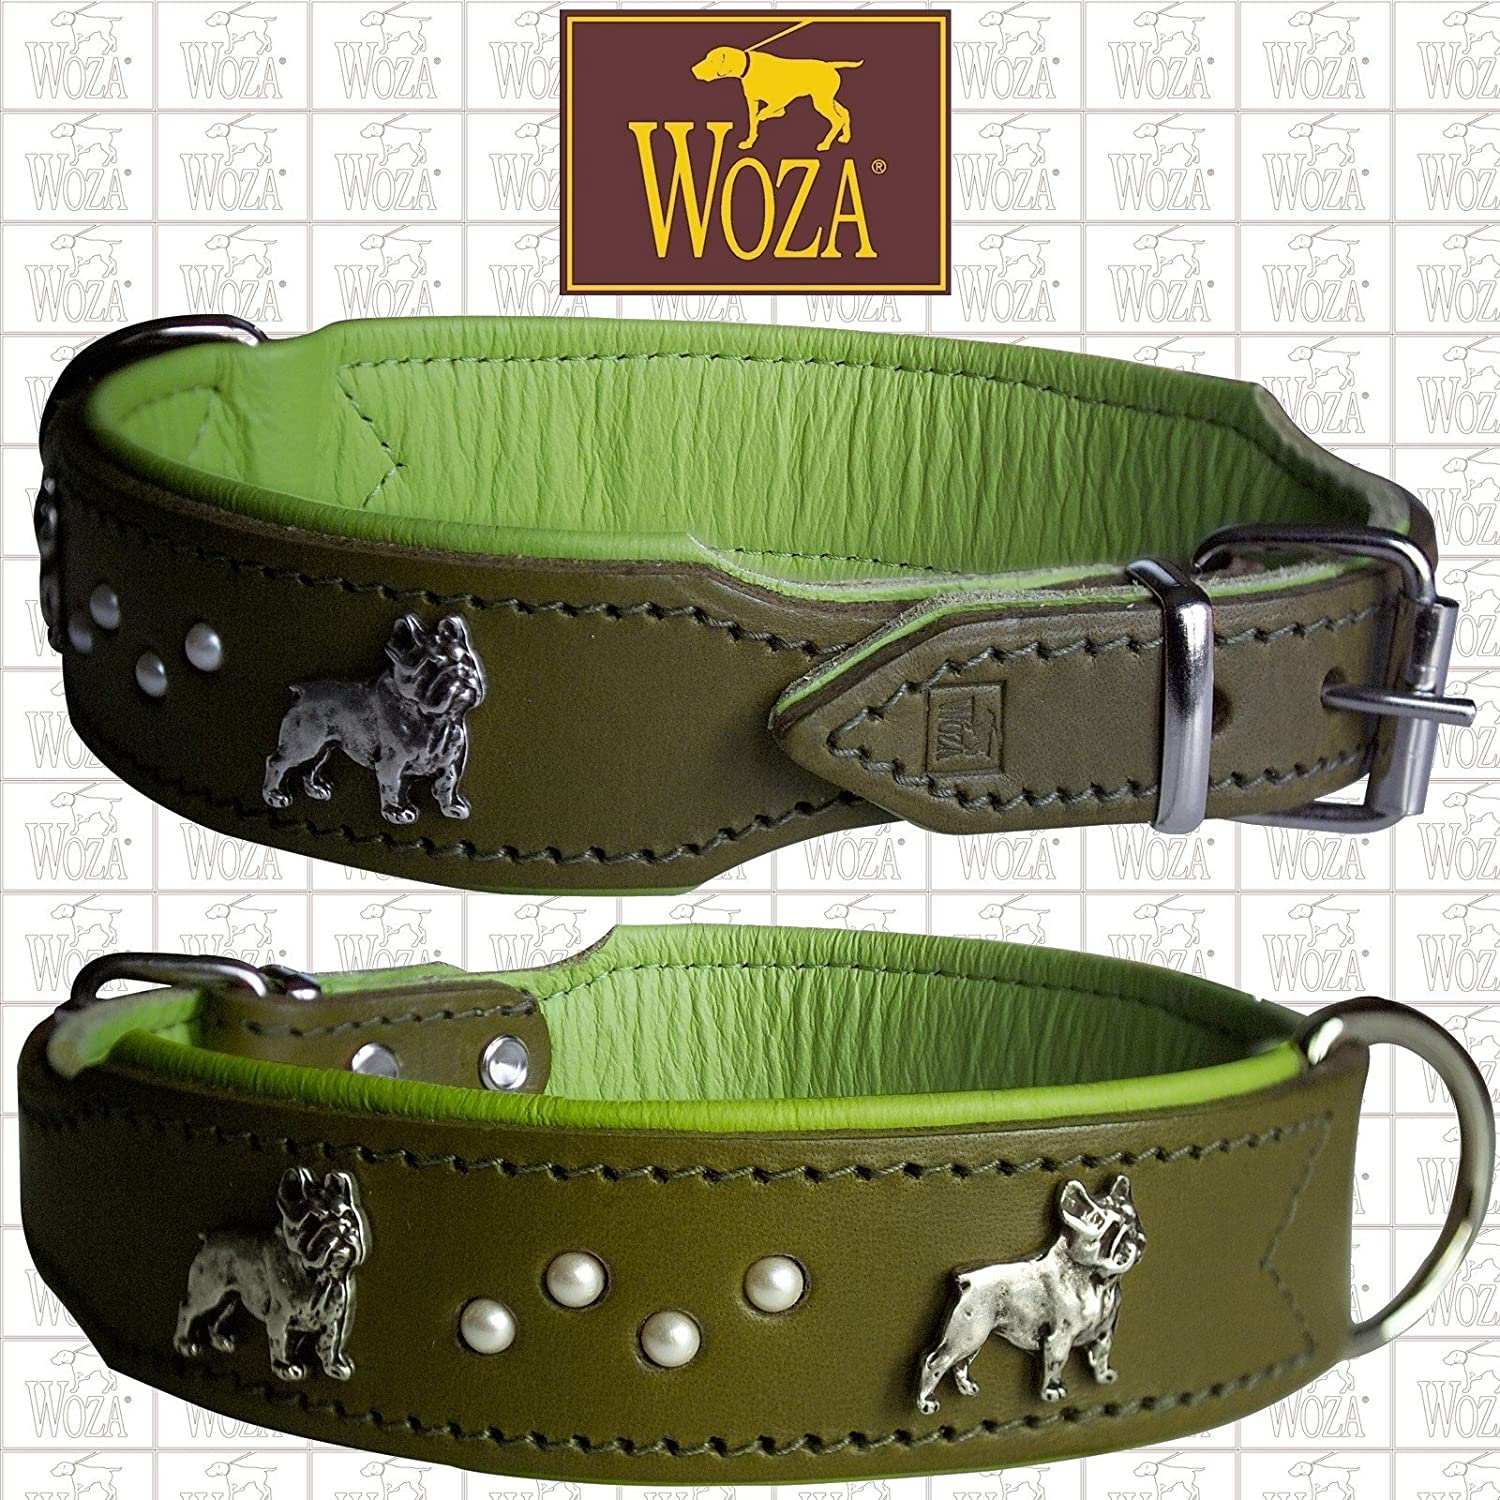 French Bull Dog Dog Collar Pearls 3.3 52 cm Woza Full-Grain Leather Nappa Cowhide Leather Collar